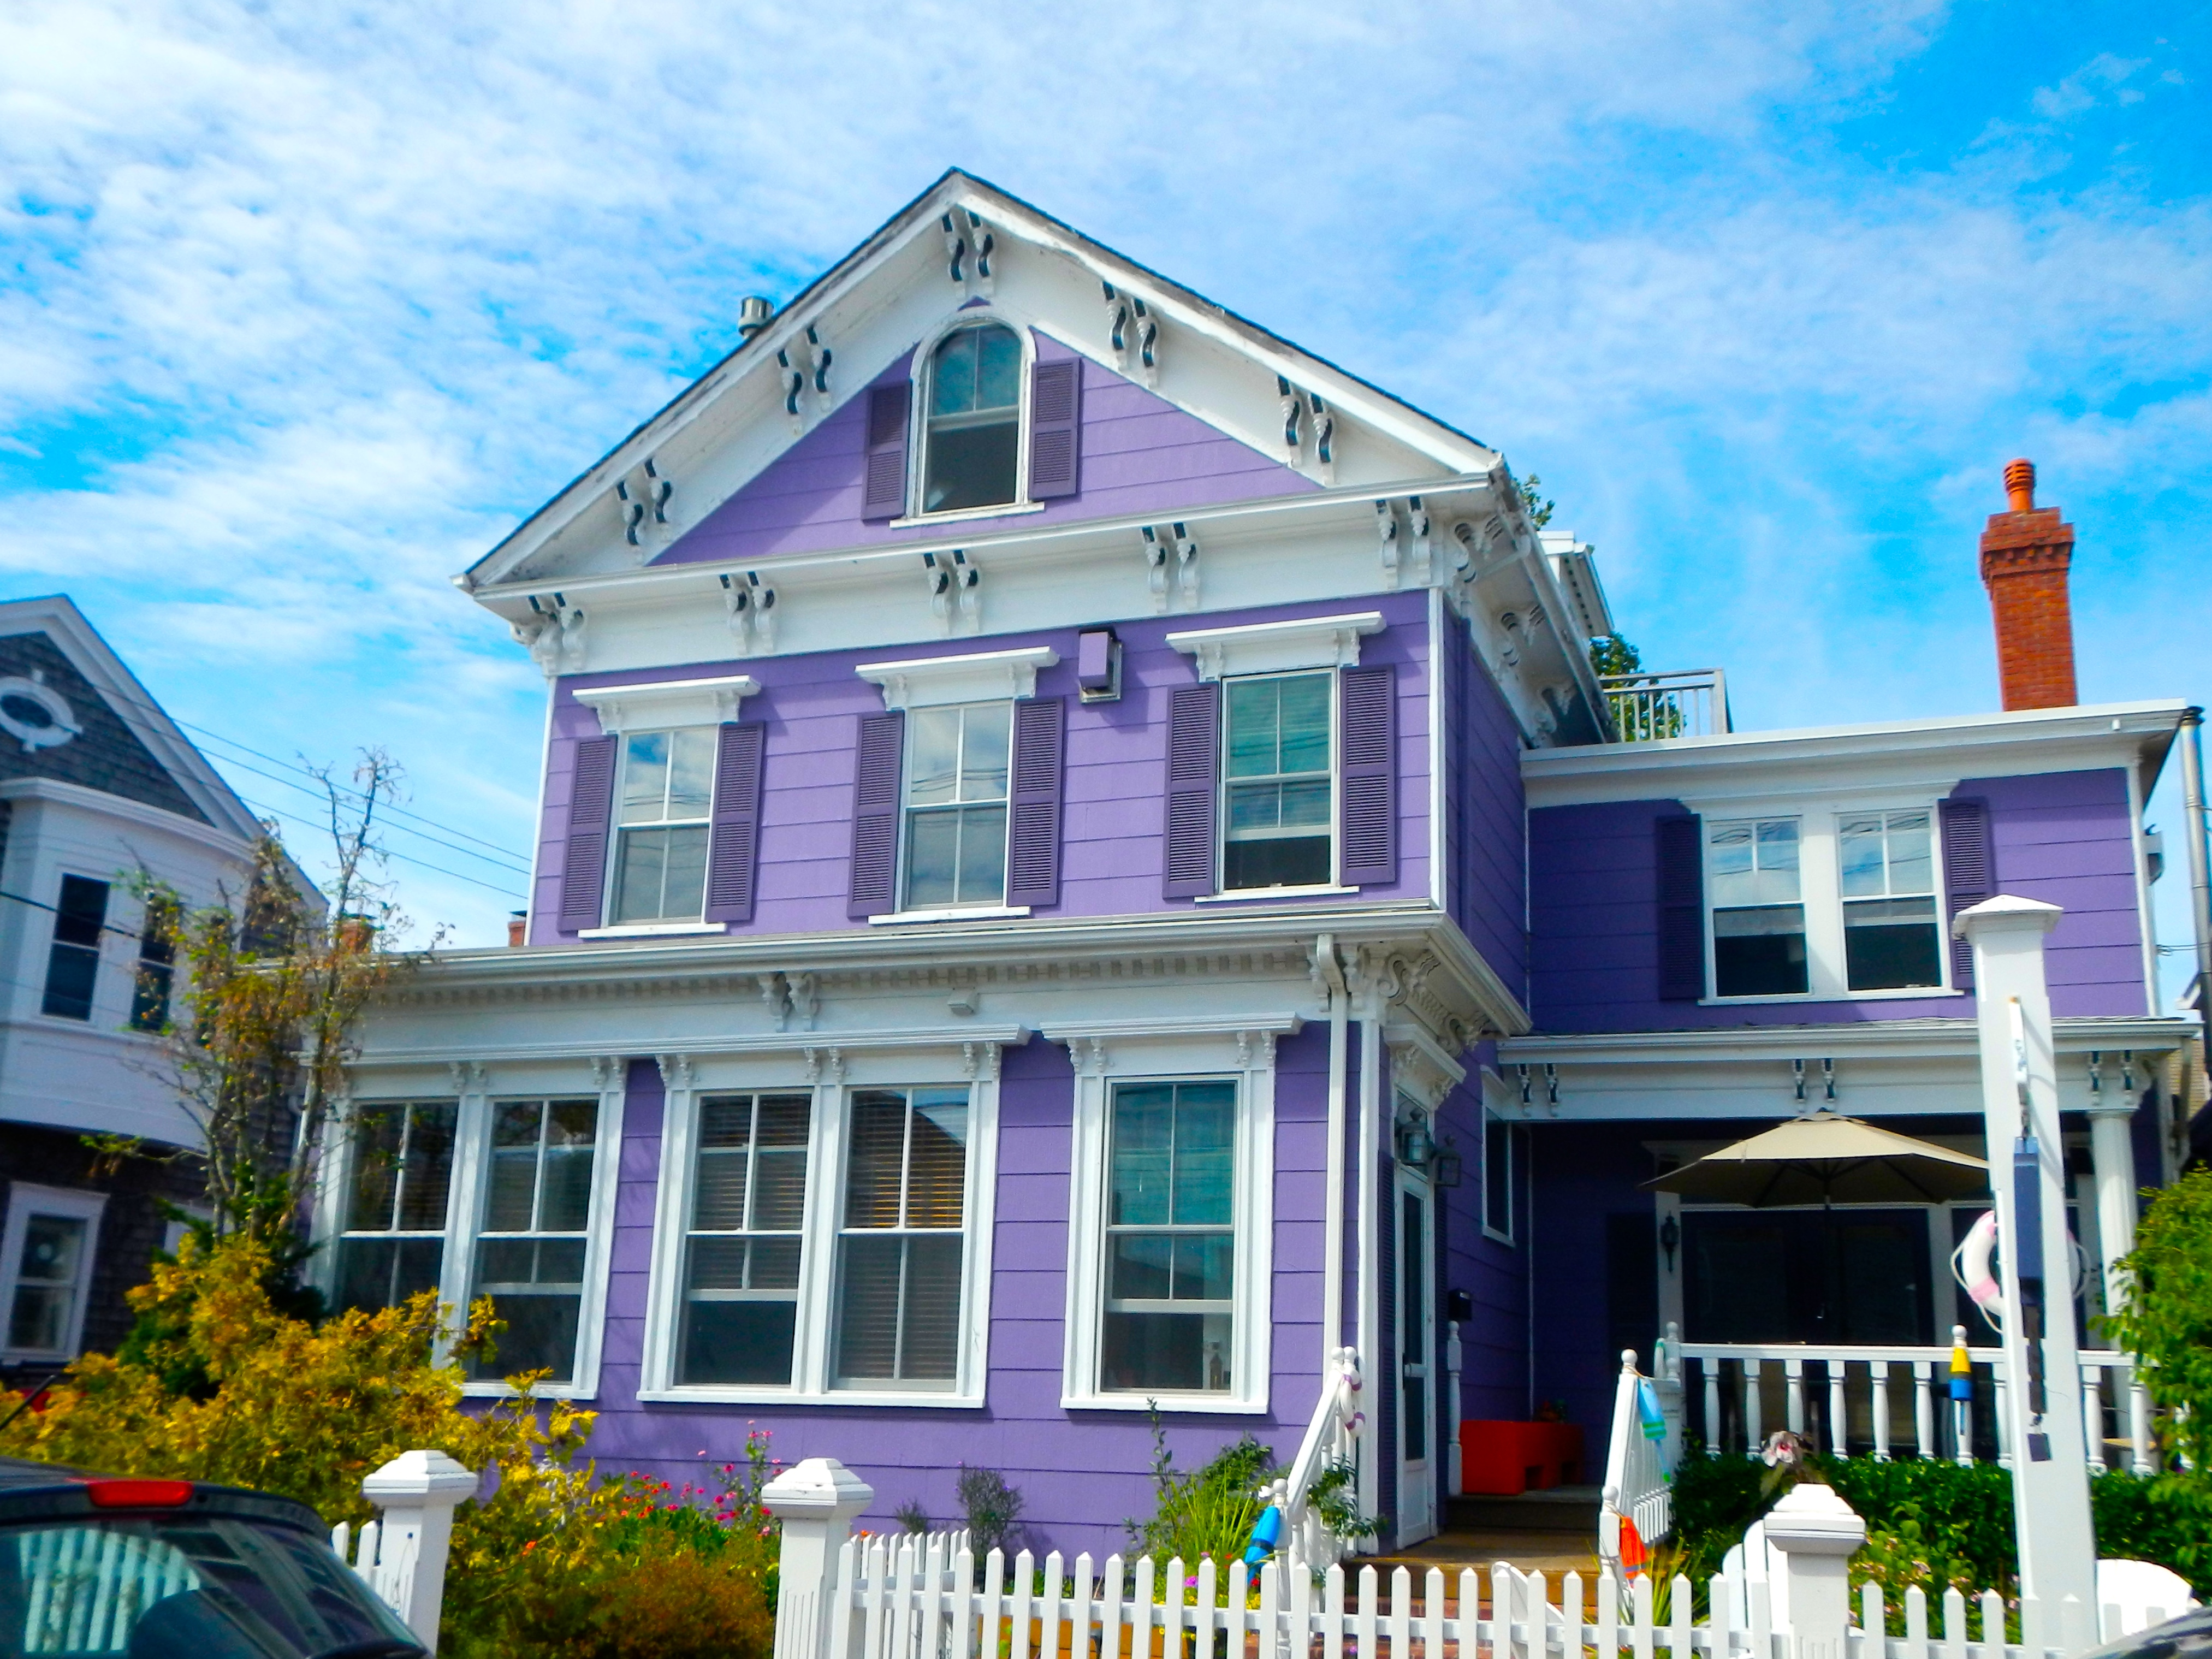 Lilac House in Provincetown